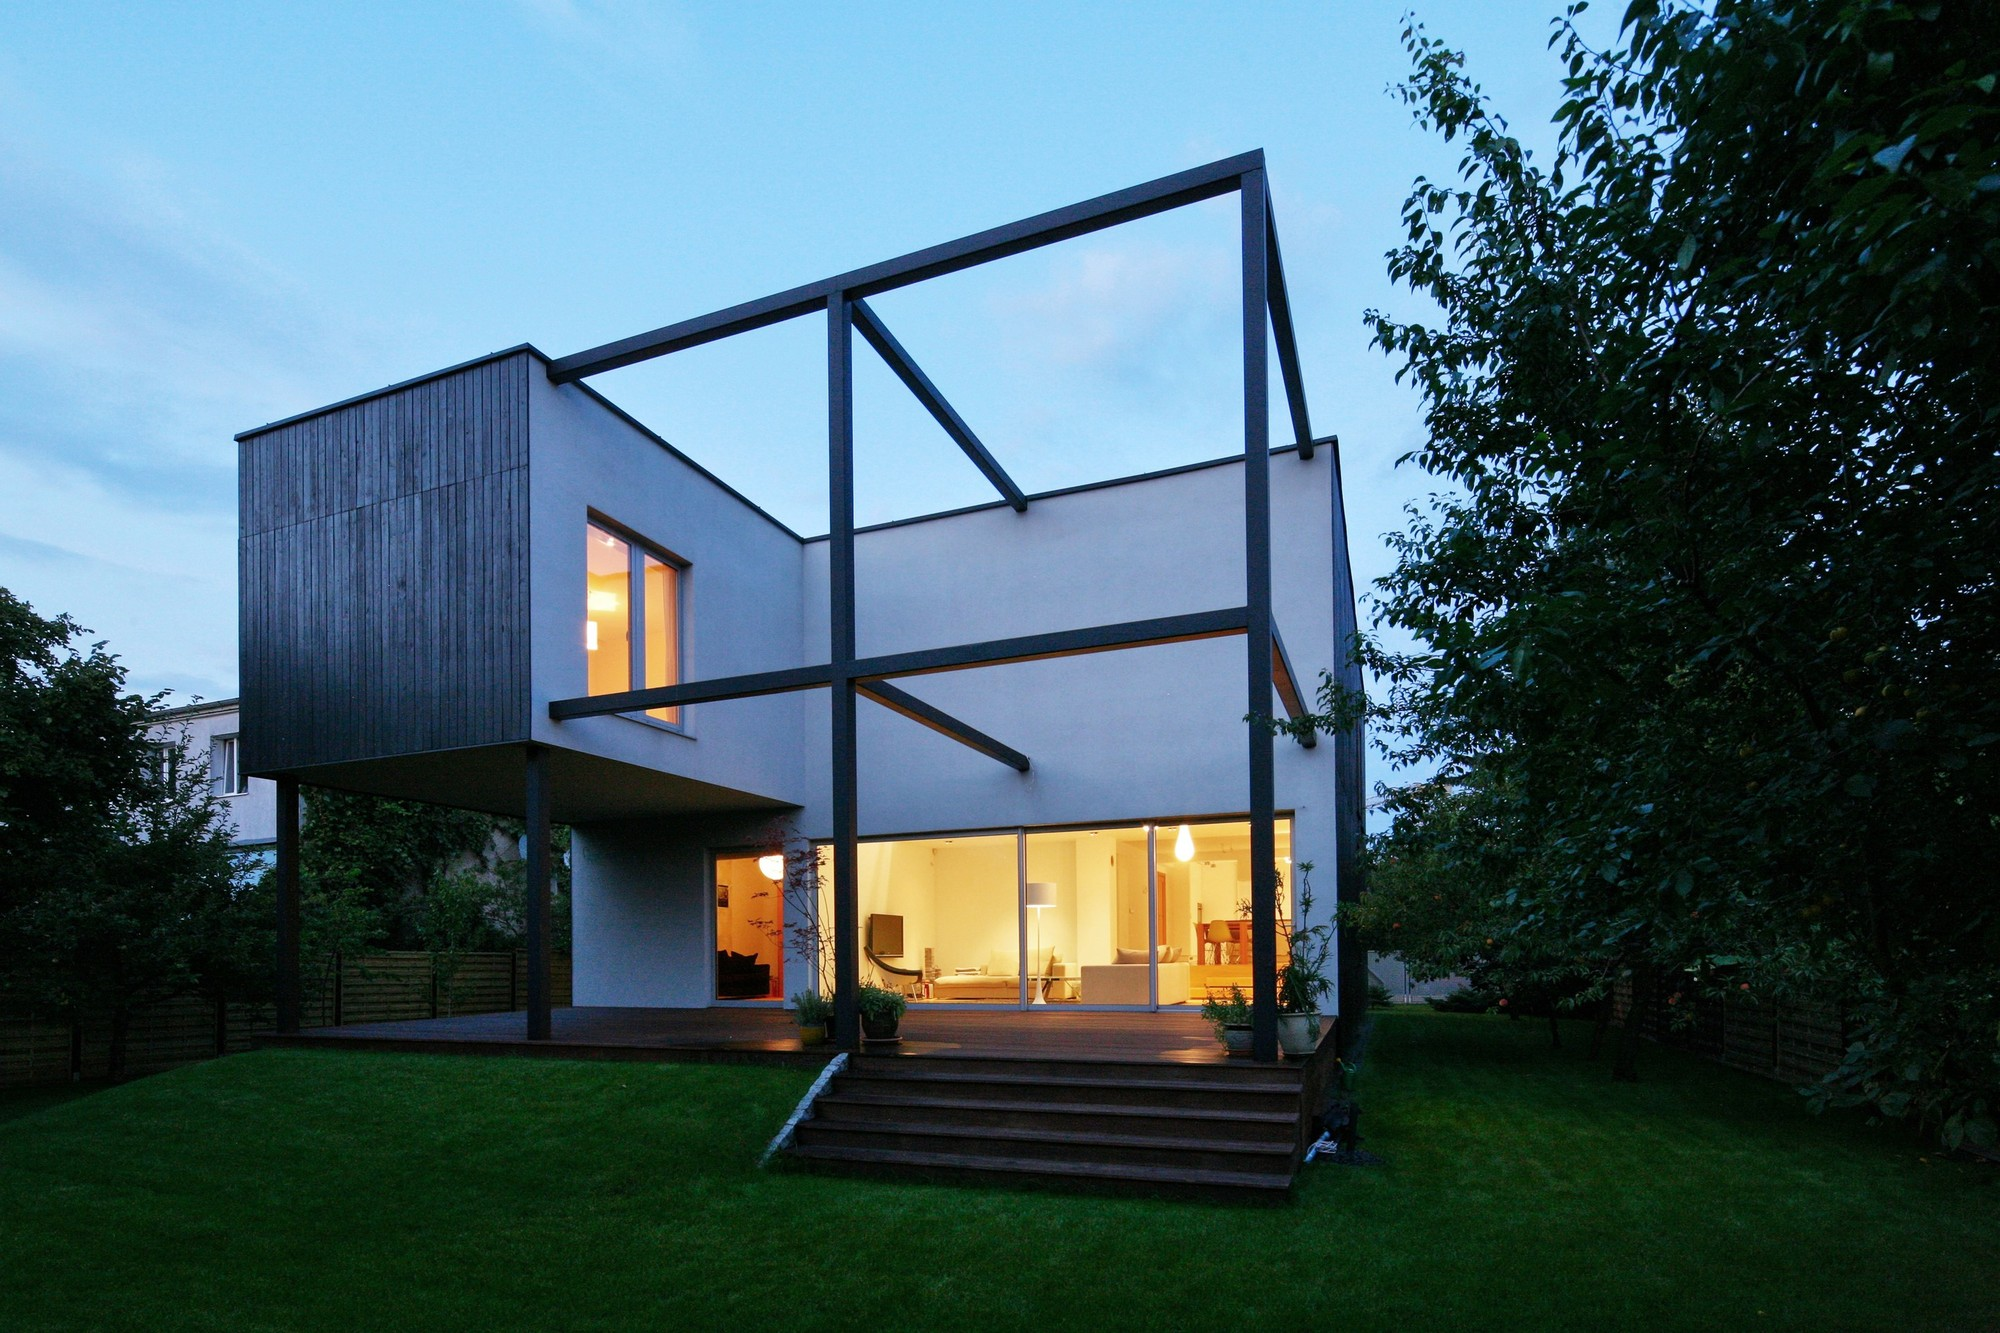 Black cube house kameleonlab archdaily for Maison design cube